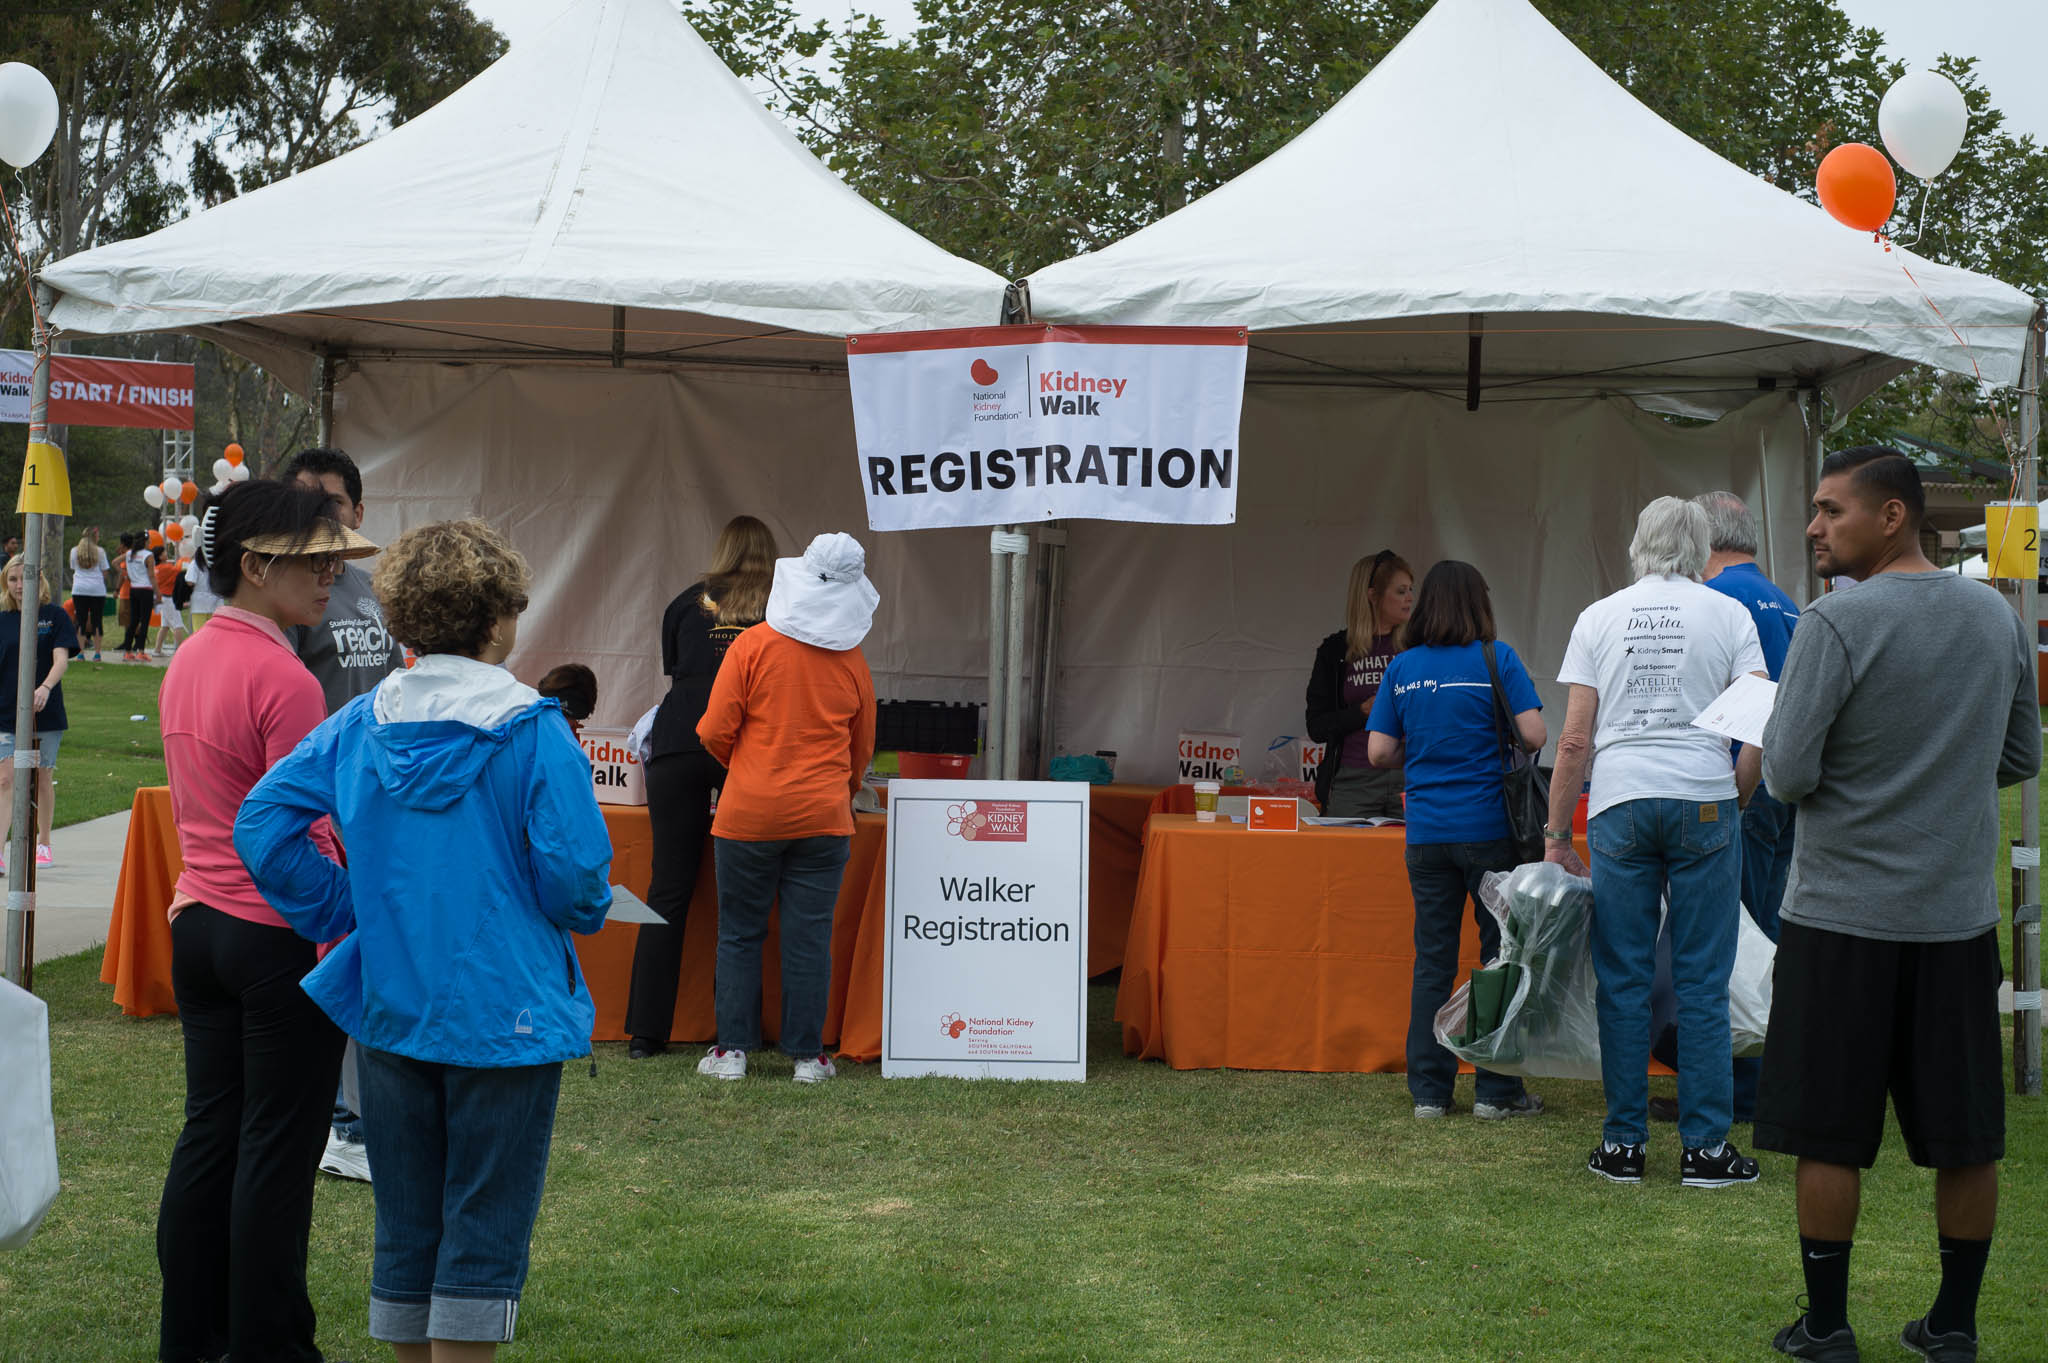 With 1,100 Participants the Registration Desk was a Busy Place